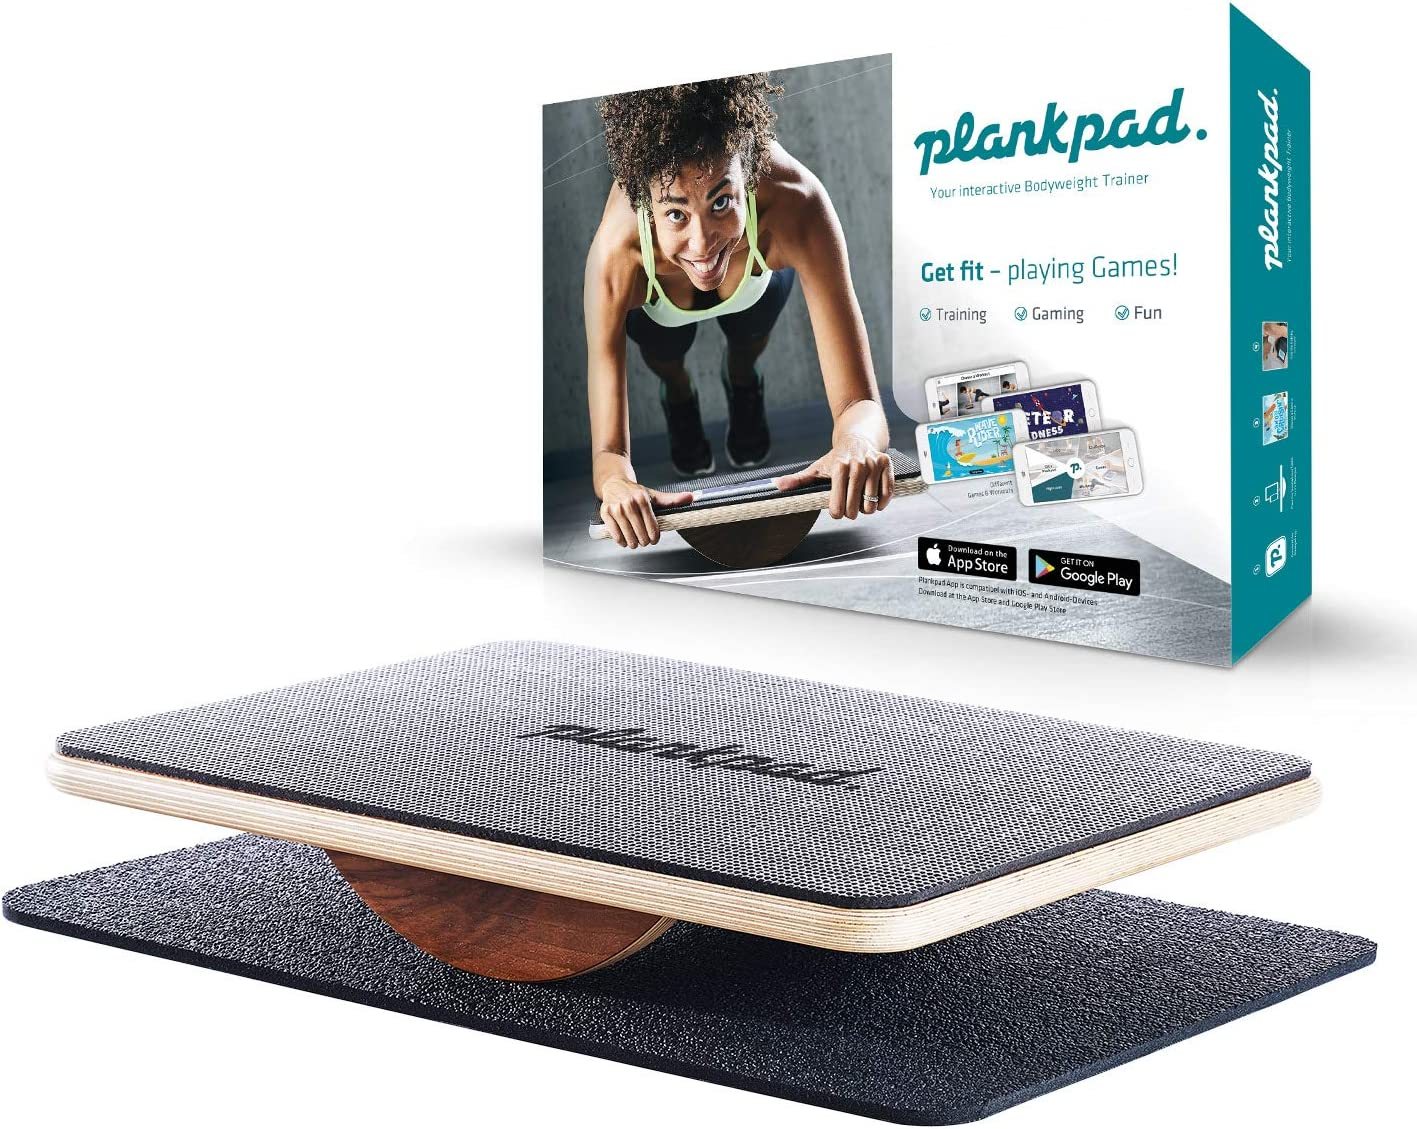 Plankpad – Balance Board Bodyweight Fitness Trainer with Training App for iOS Android – Interactive Plank Abs Trainer in Maple Wood Walnut – as seen on German Shark Tank